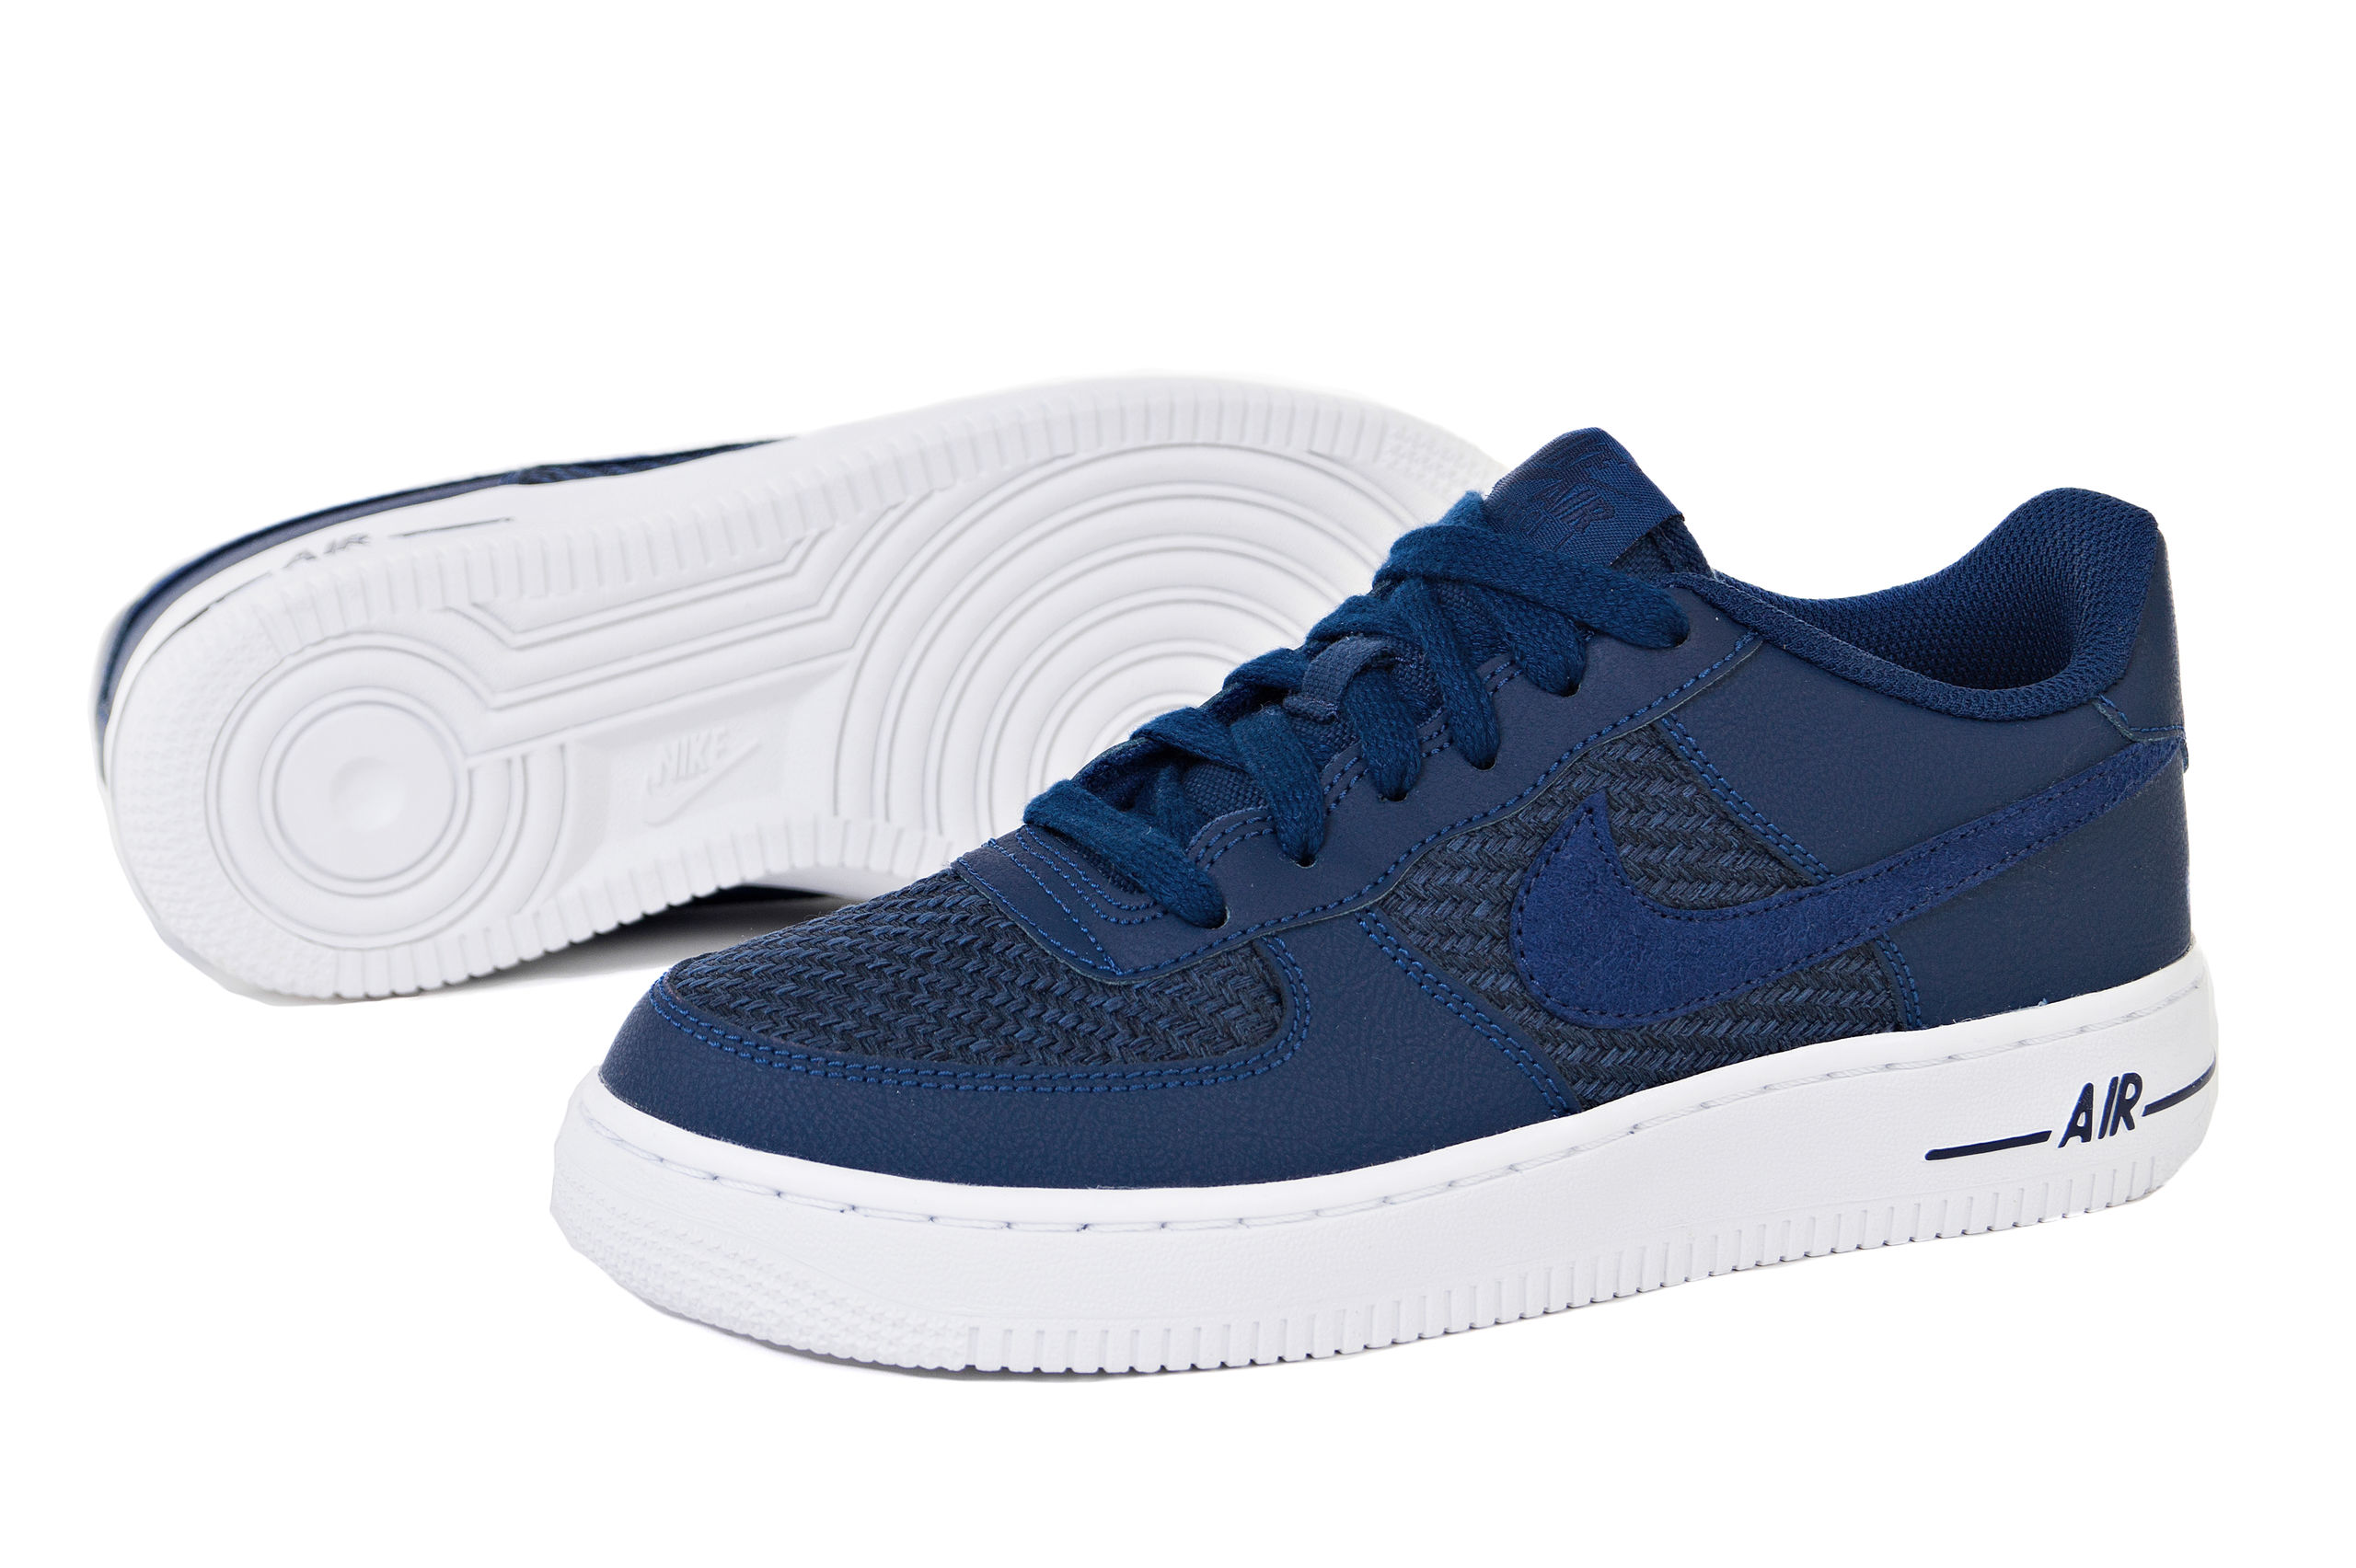 in stock bc00c 2a589 BUTY NIKE AIR FORCE 1 LV8 GS 820438-406 R. 36.5